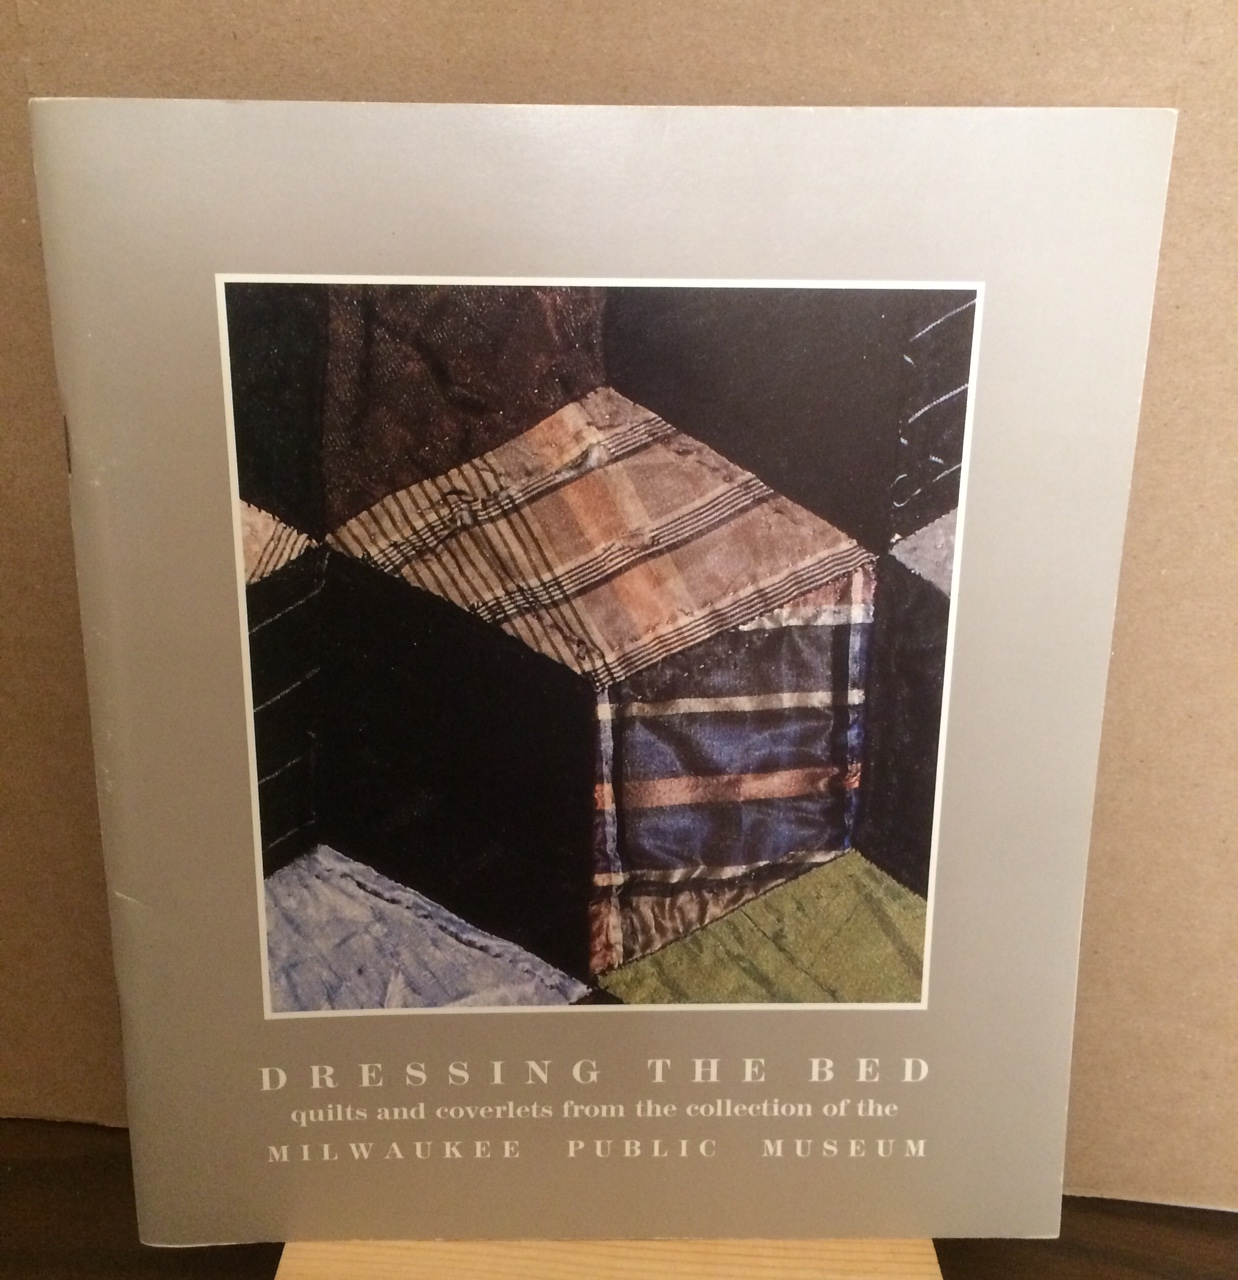 Image for DRESSING THE BED - QUILTS AND COVERLETS FROM THE COLLECTION OF THE MILWAUKEE PUBLIC MUSEUM